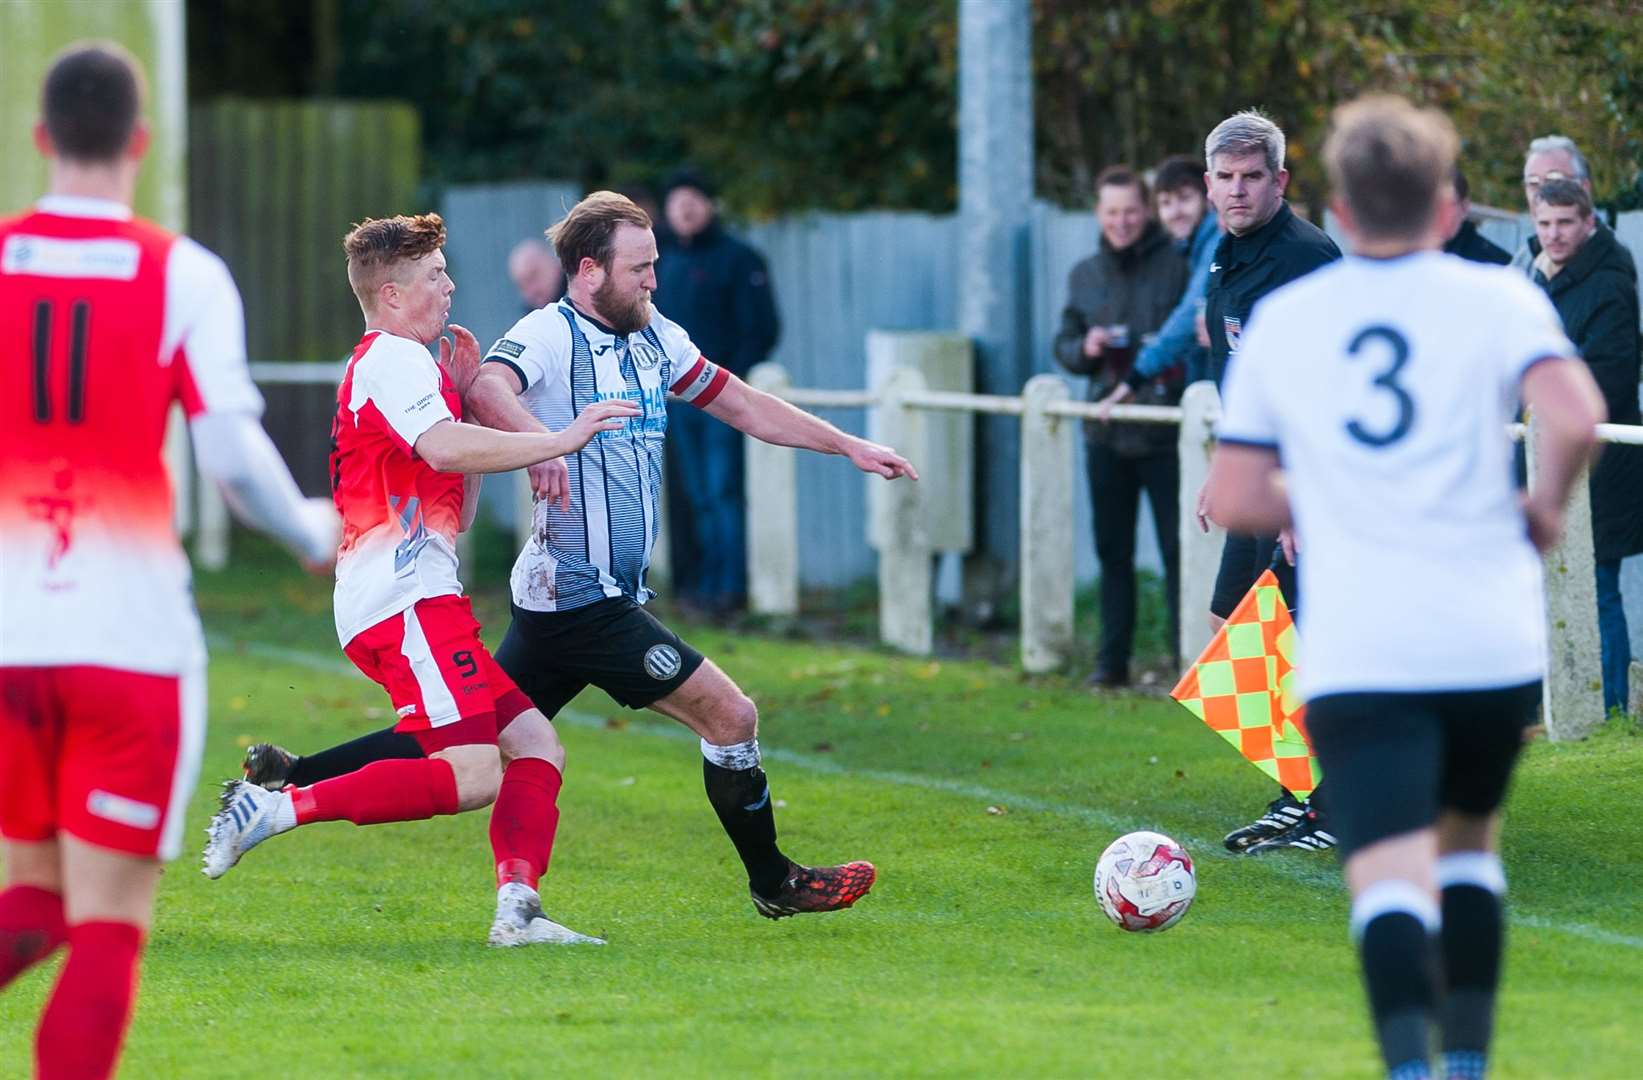 Dean Miller, pictured right in action for Swaffham Town FC, is raising funds for Prostate Cancer UK. Picture: Ian Burt